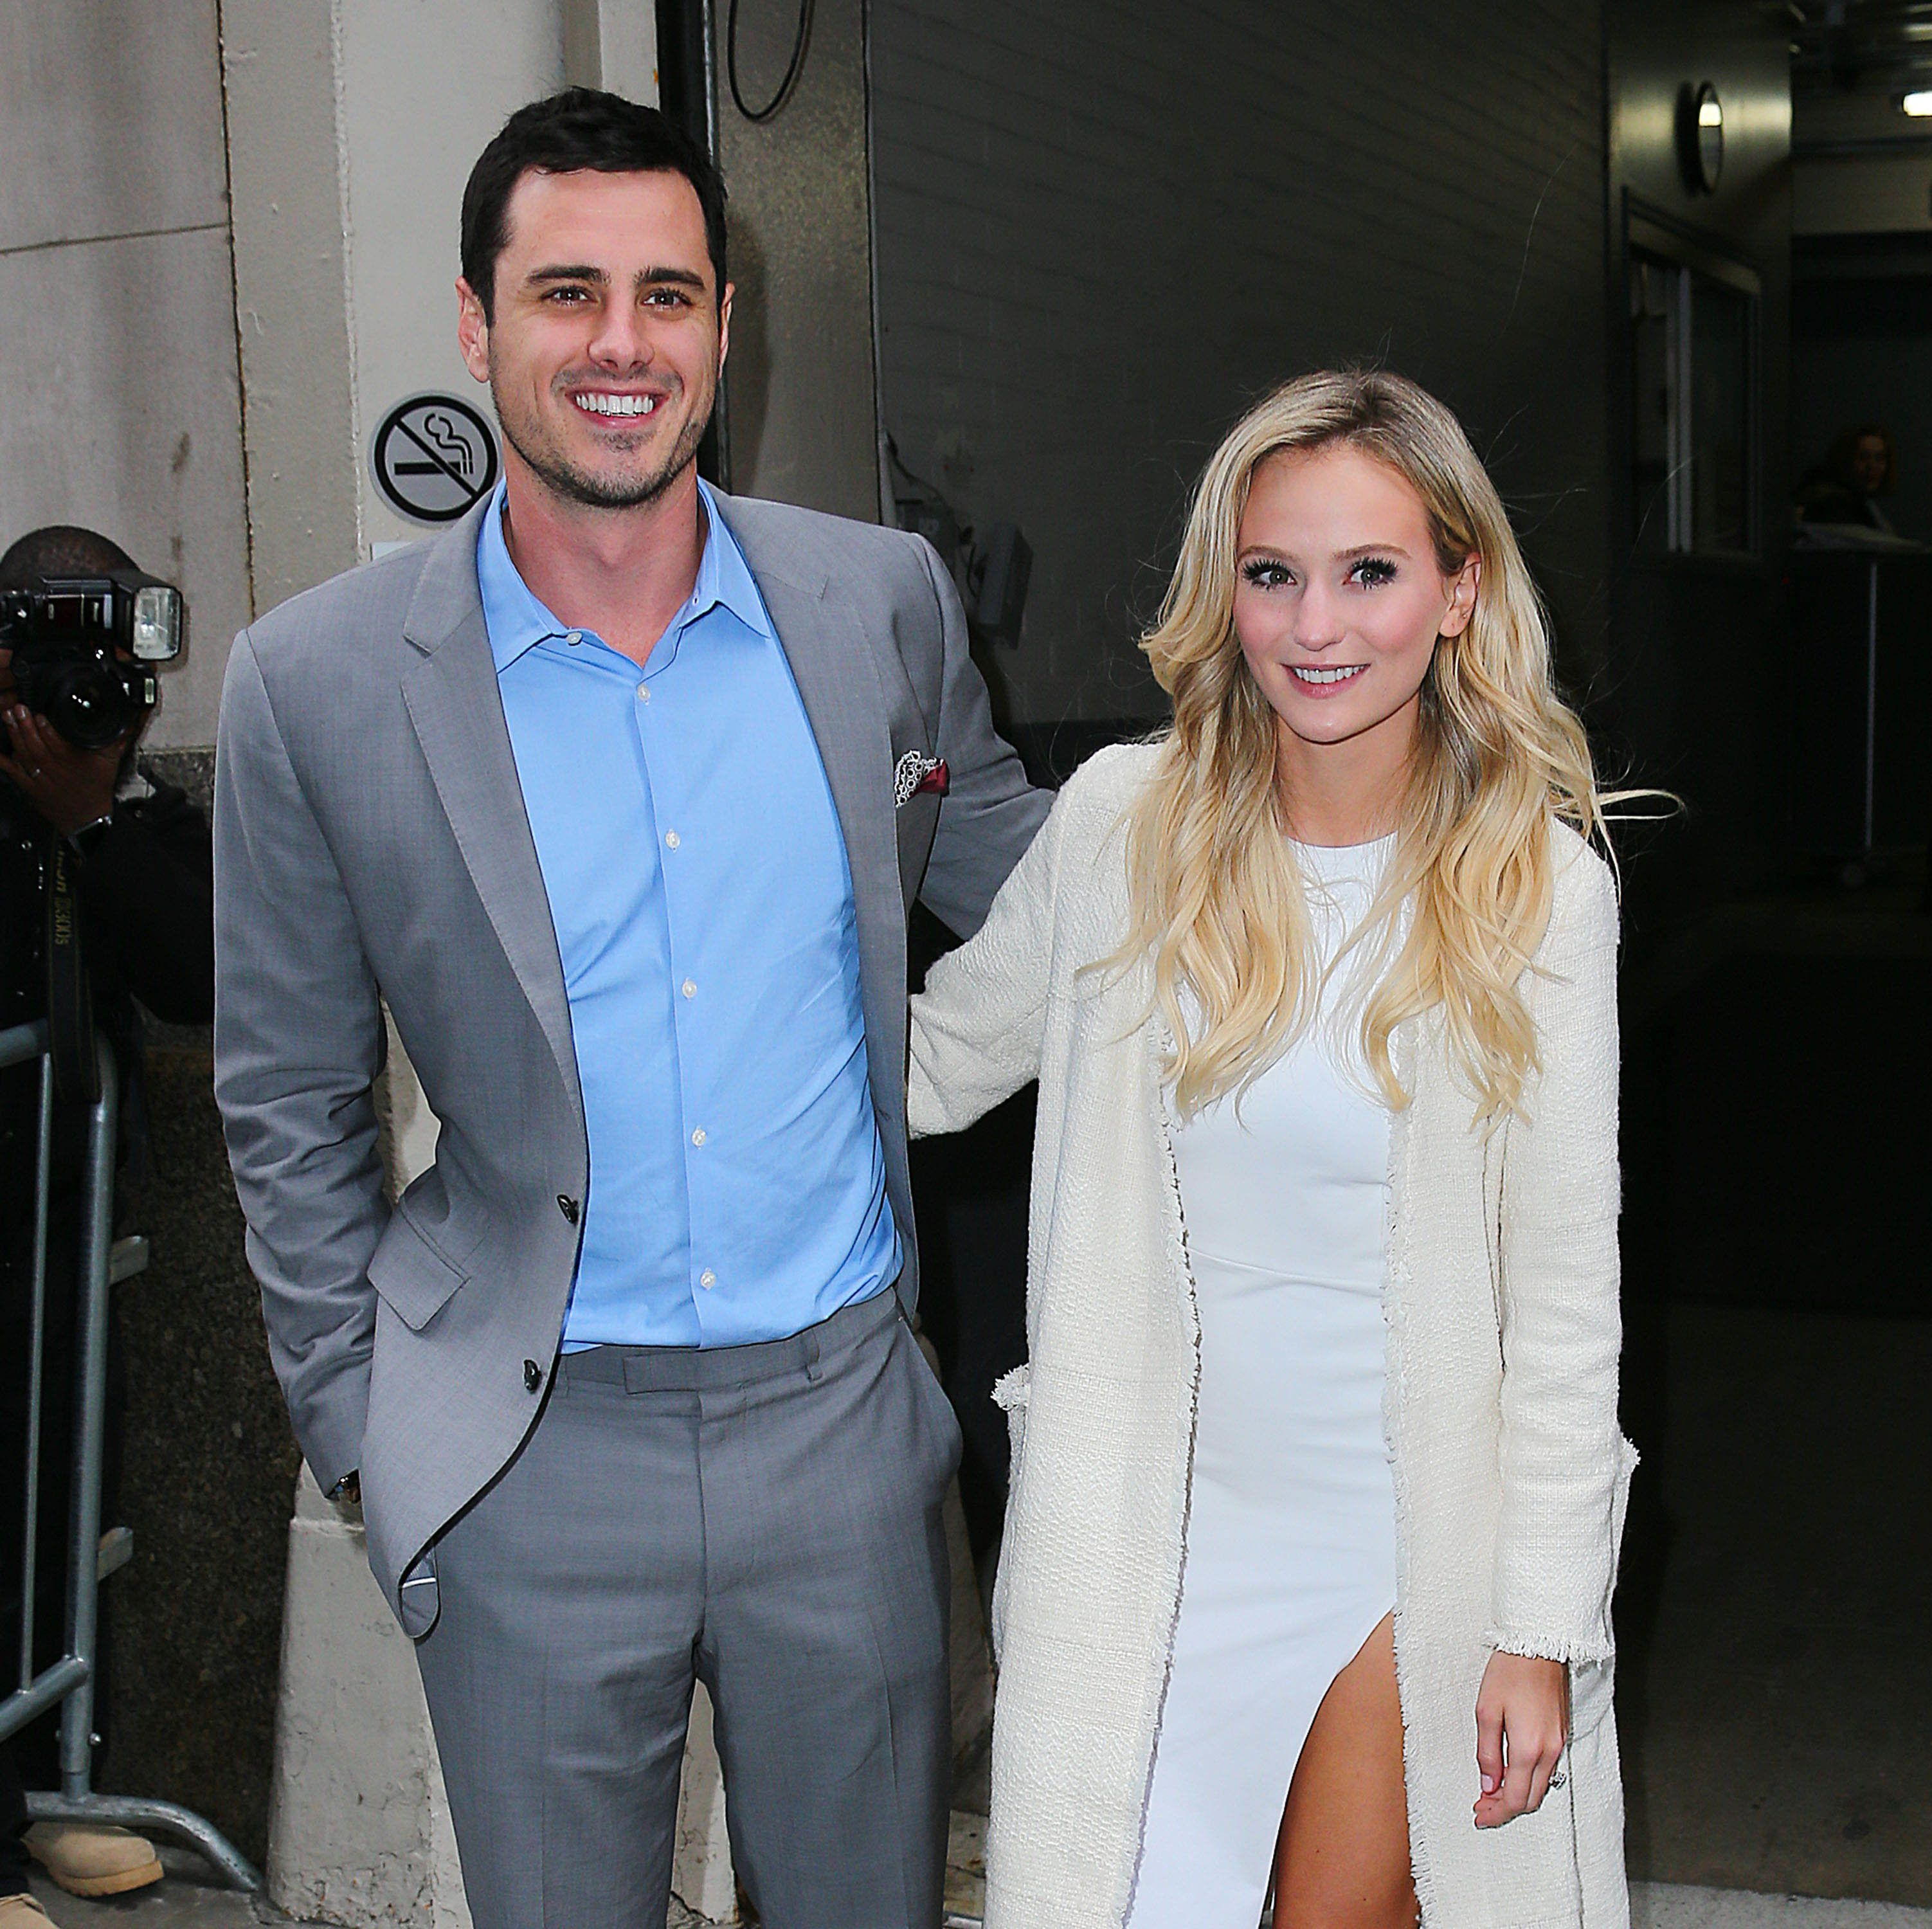 NEW YORK, NY - MARCH 15:  The Bachelor Ben Higgins and his fiancee Lauren Bushnell are seen on March 15, 2016 in New York City.  (Photo by XPX/Star Max/GC Images)